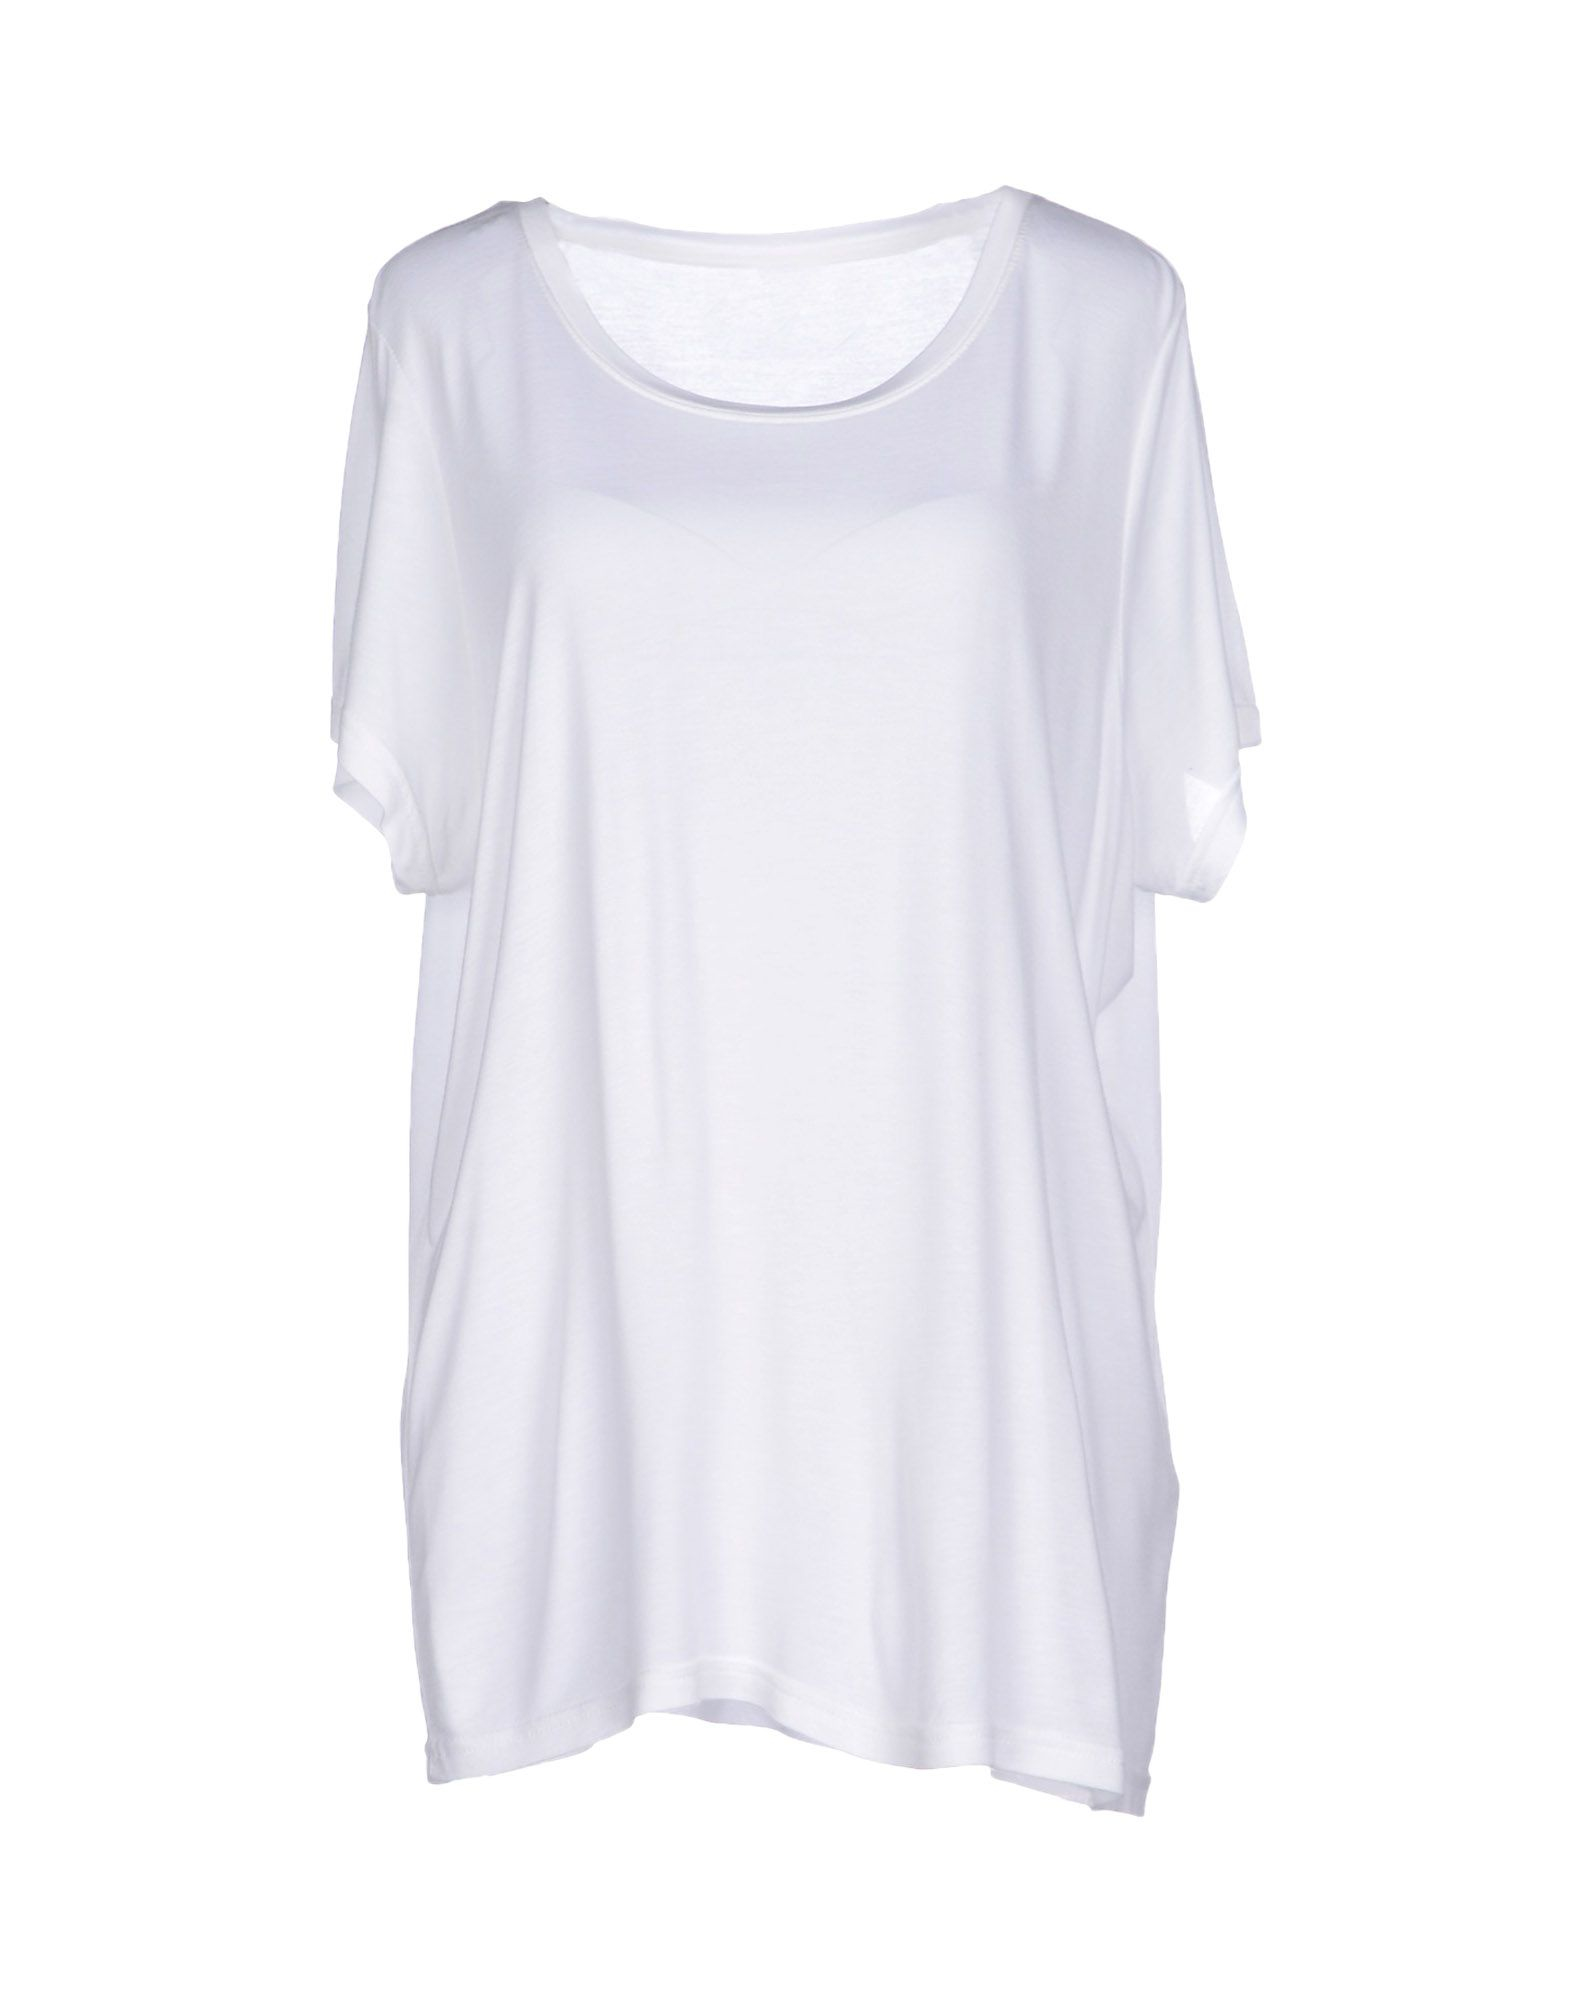 vero moda t shirt in white save 30 lyst. Black Bedroom Furniture Sets. Home Design Ideas